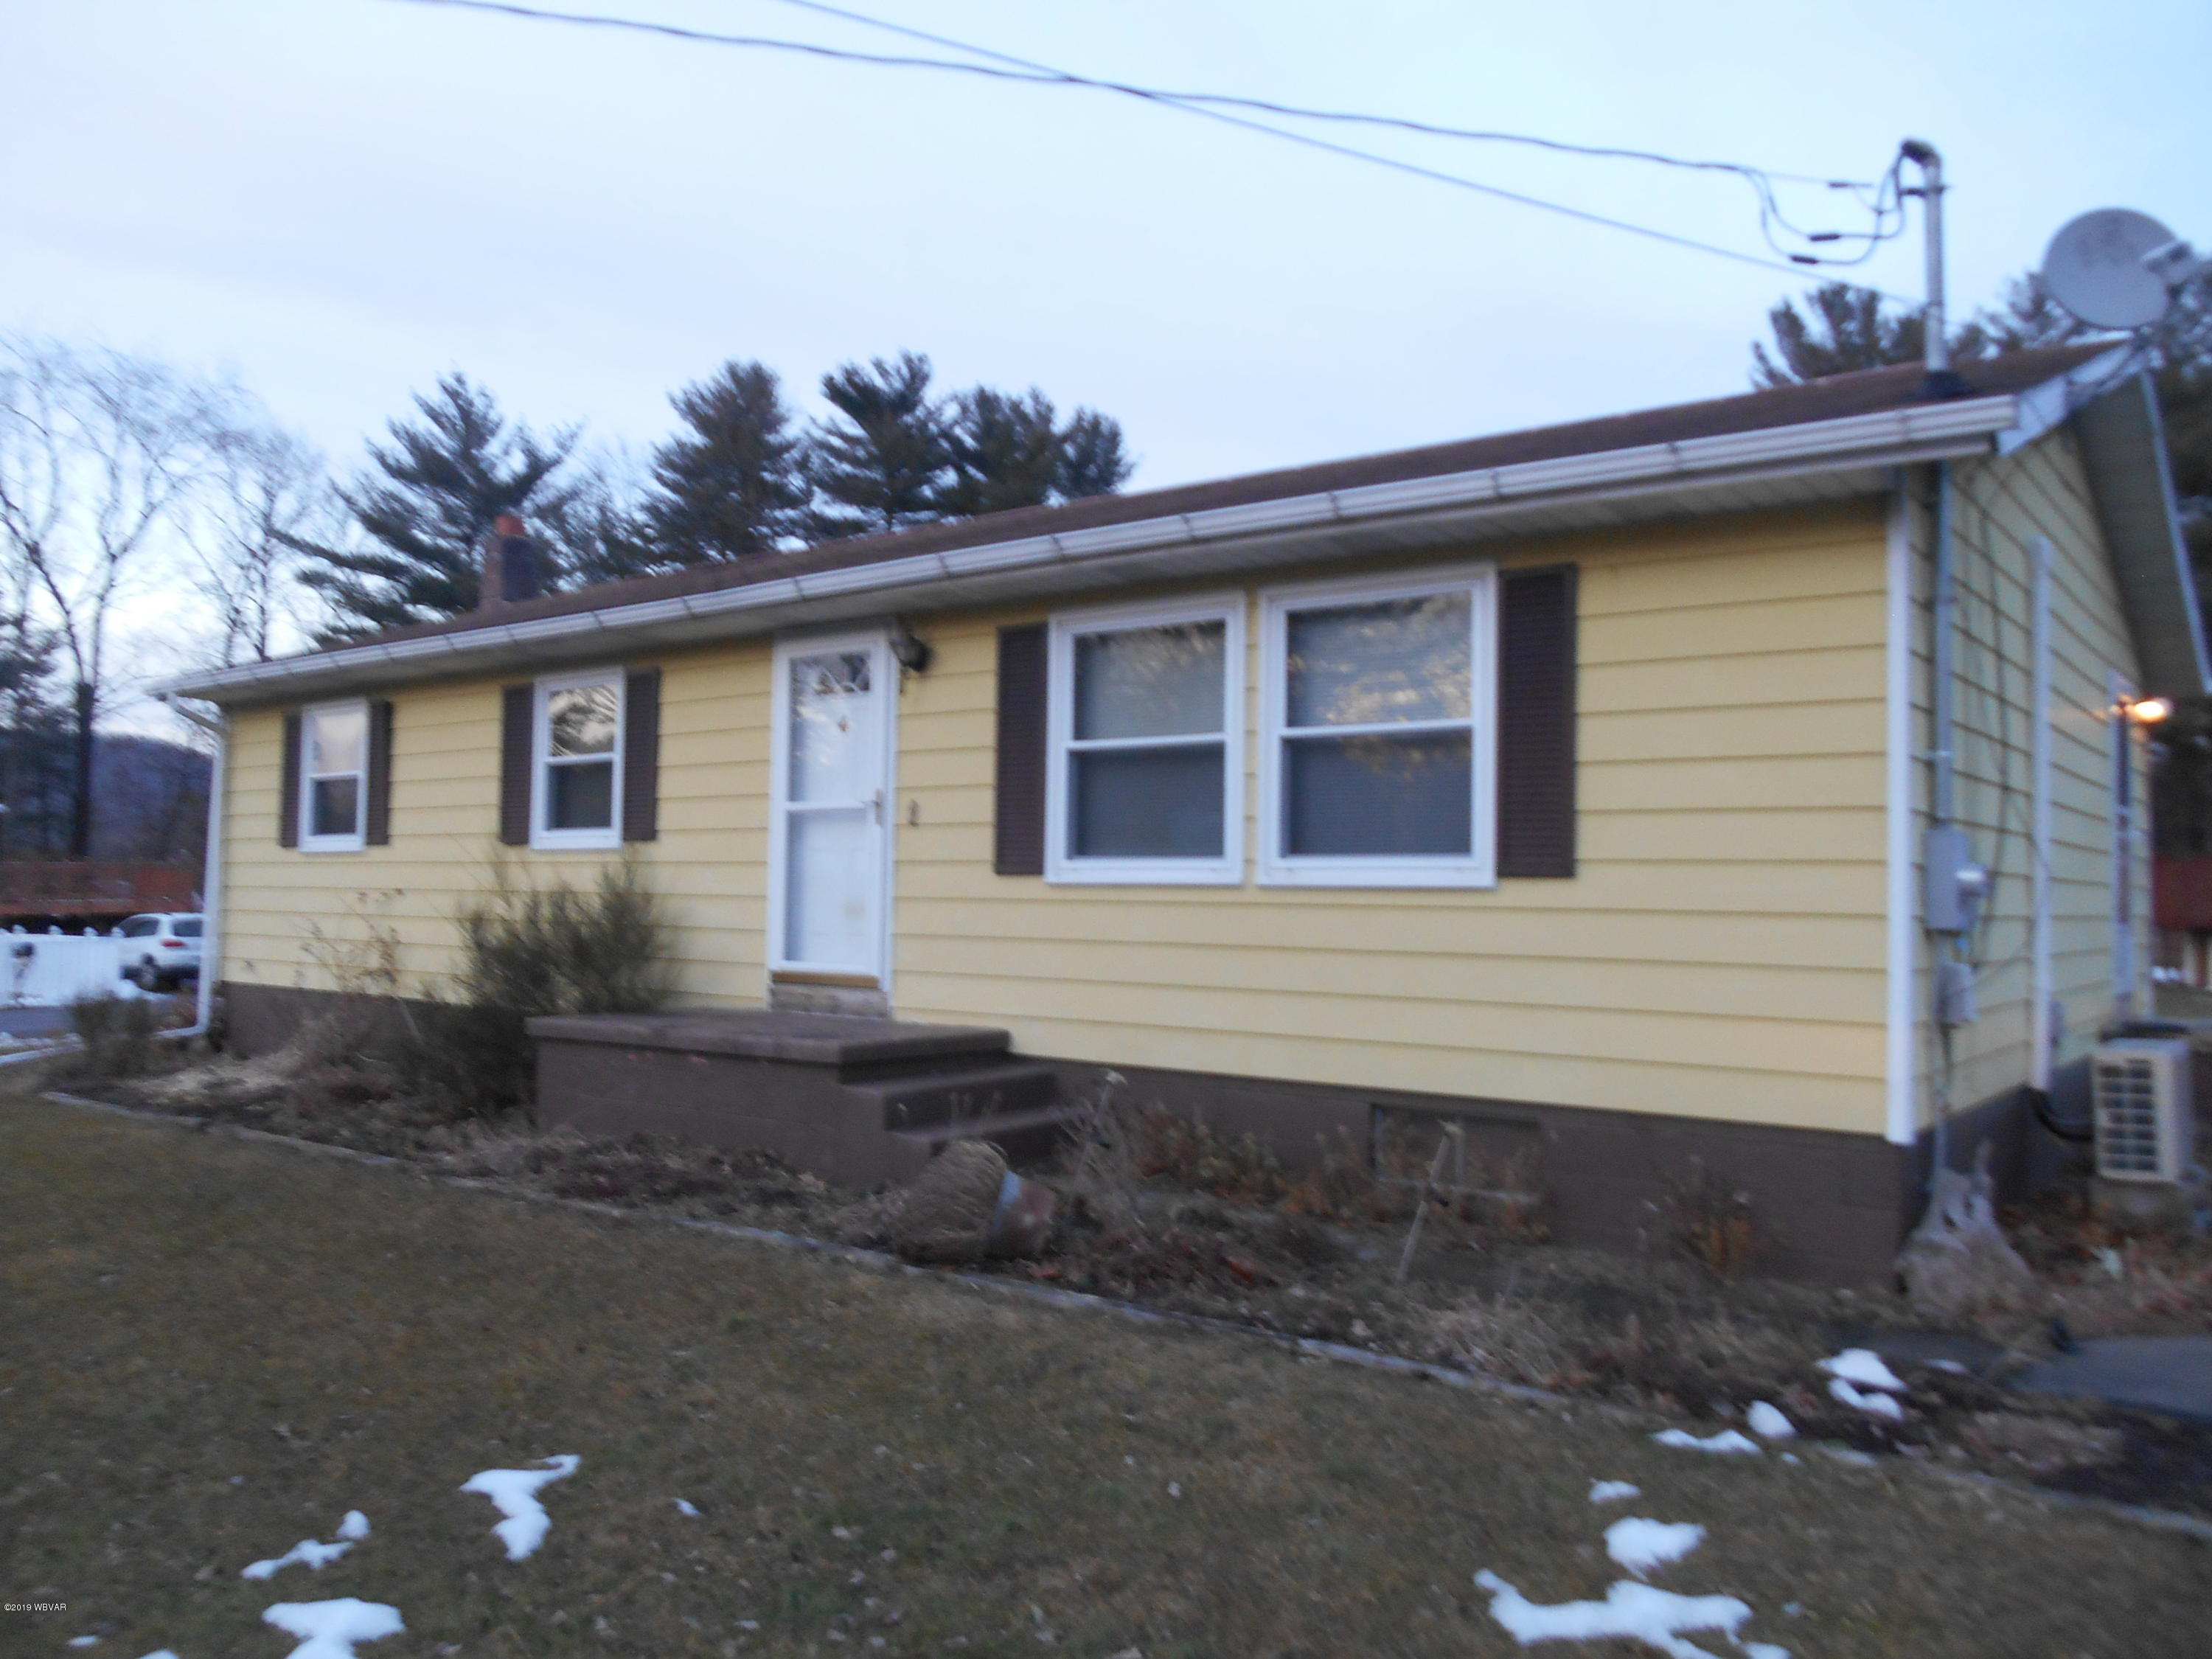 174 HAVEN PINES ROAD,Mill Hall,PA 17751,3 Bedrooms Bedrooms,1 BathroomBathrooms,Residential,HAVEN PINES,WB-86461